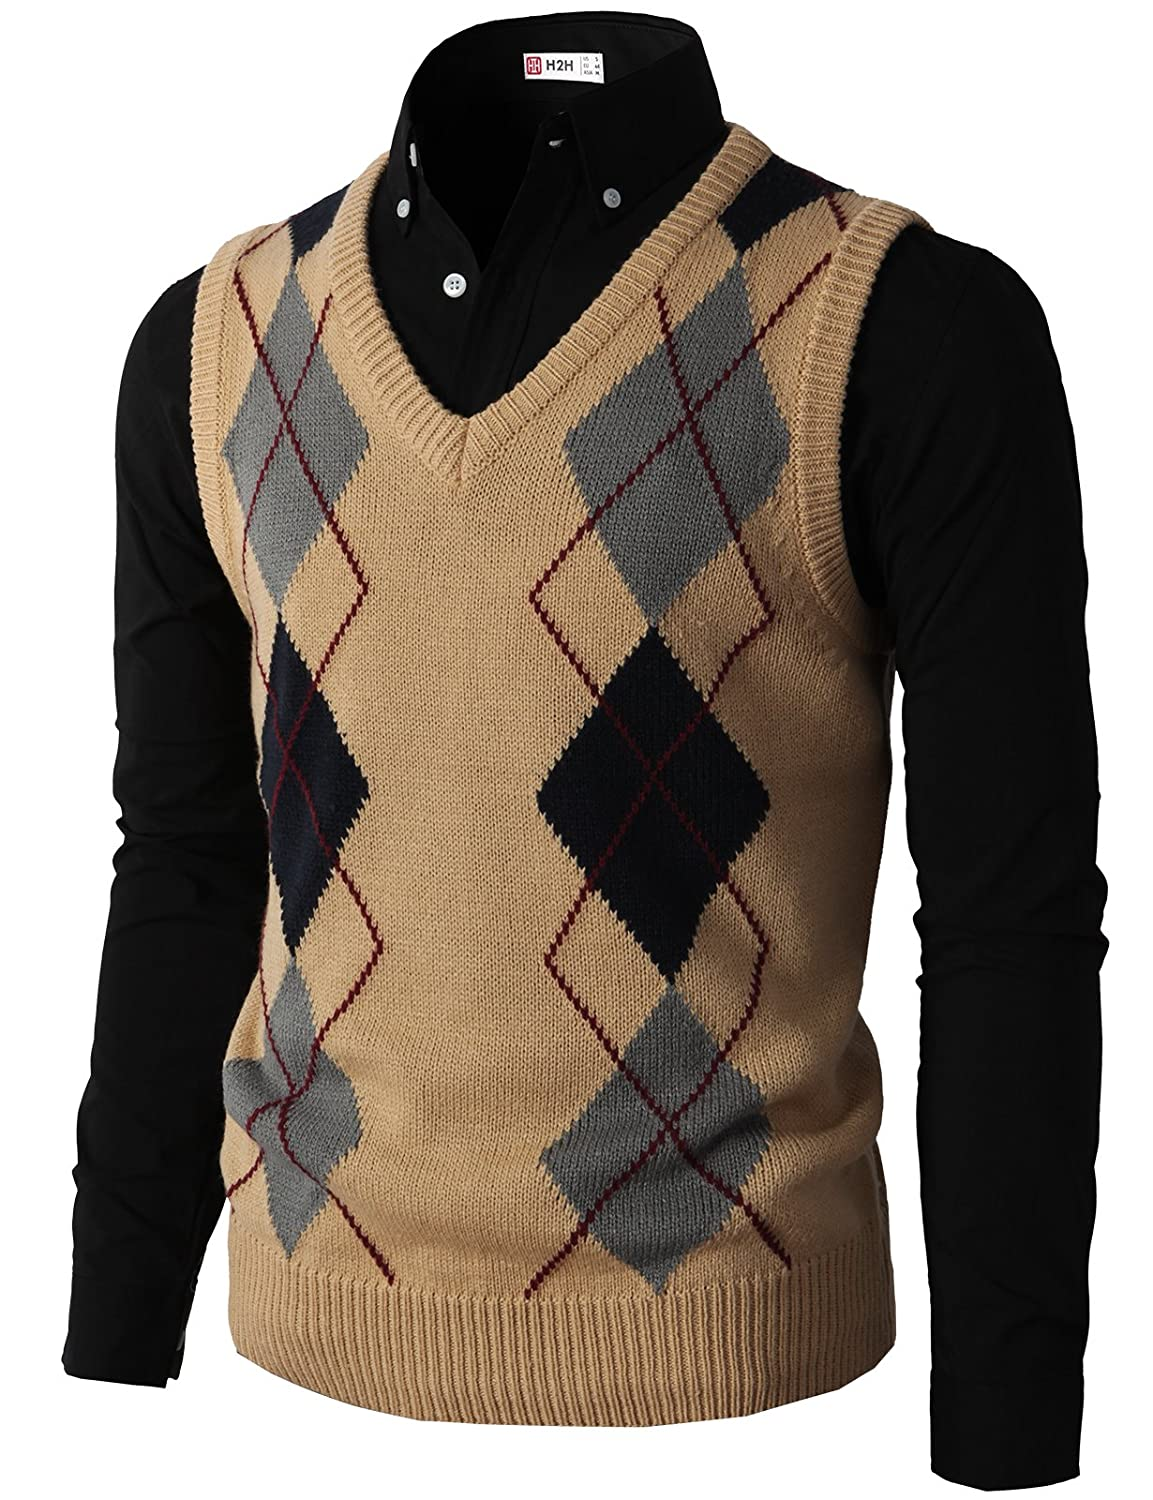 1920s Style Mens Vests H2H Mens Casual Slim Fit Argyle V-Neck Golf Sweater Vest Of Various Colors $29.70 AT vintagedancer.com